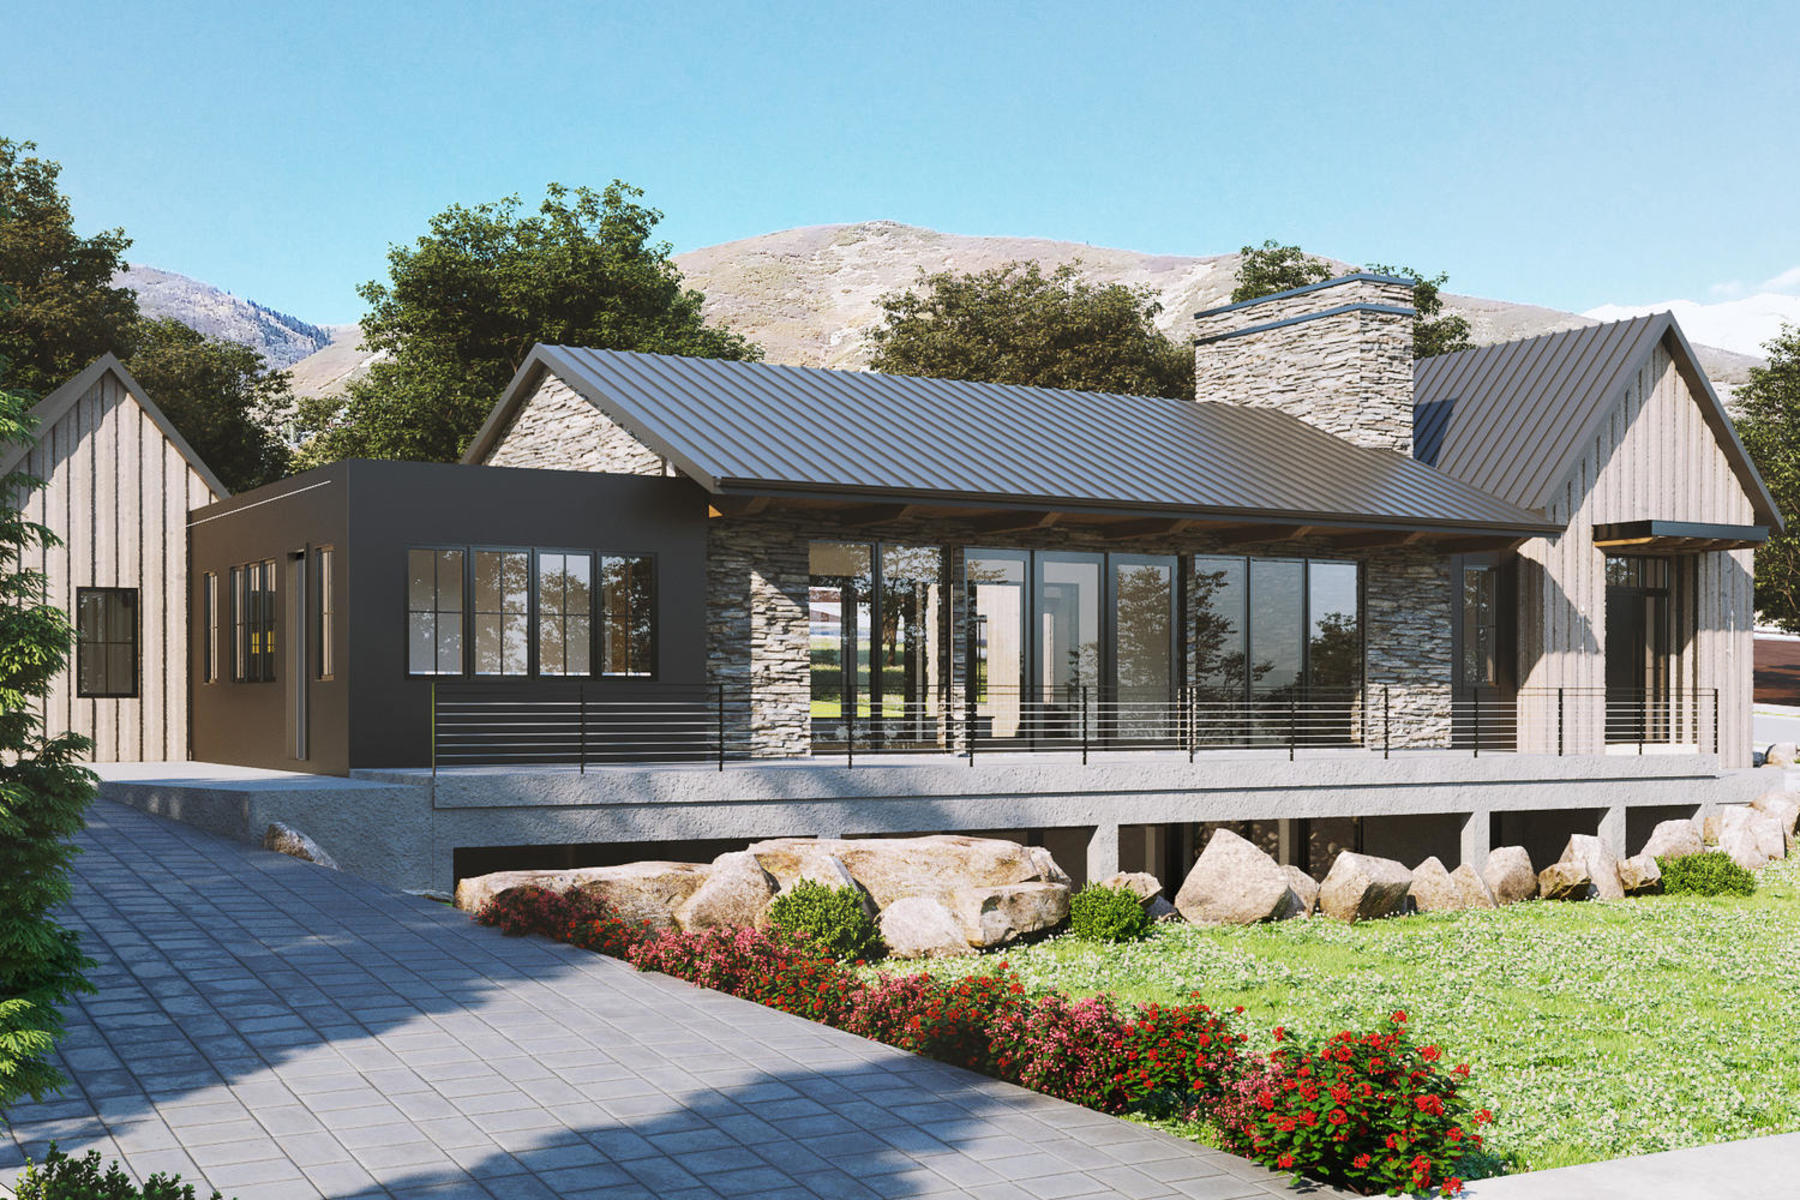 Single Family Homes for Active at Modern Scandinavian Farmhouse 433 North 850 West Midway, Utah 84049 United States